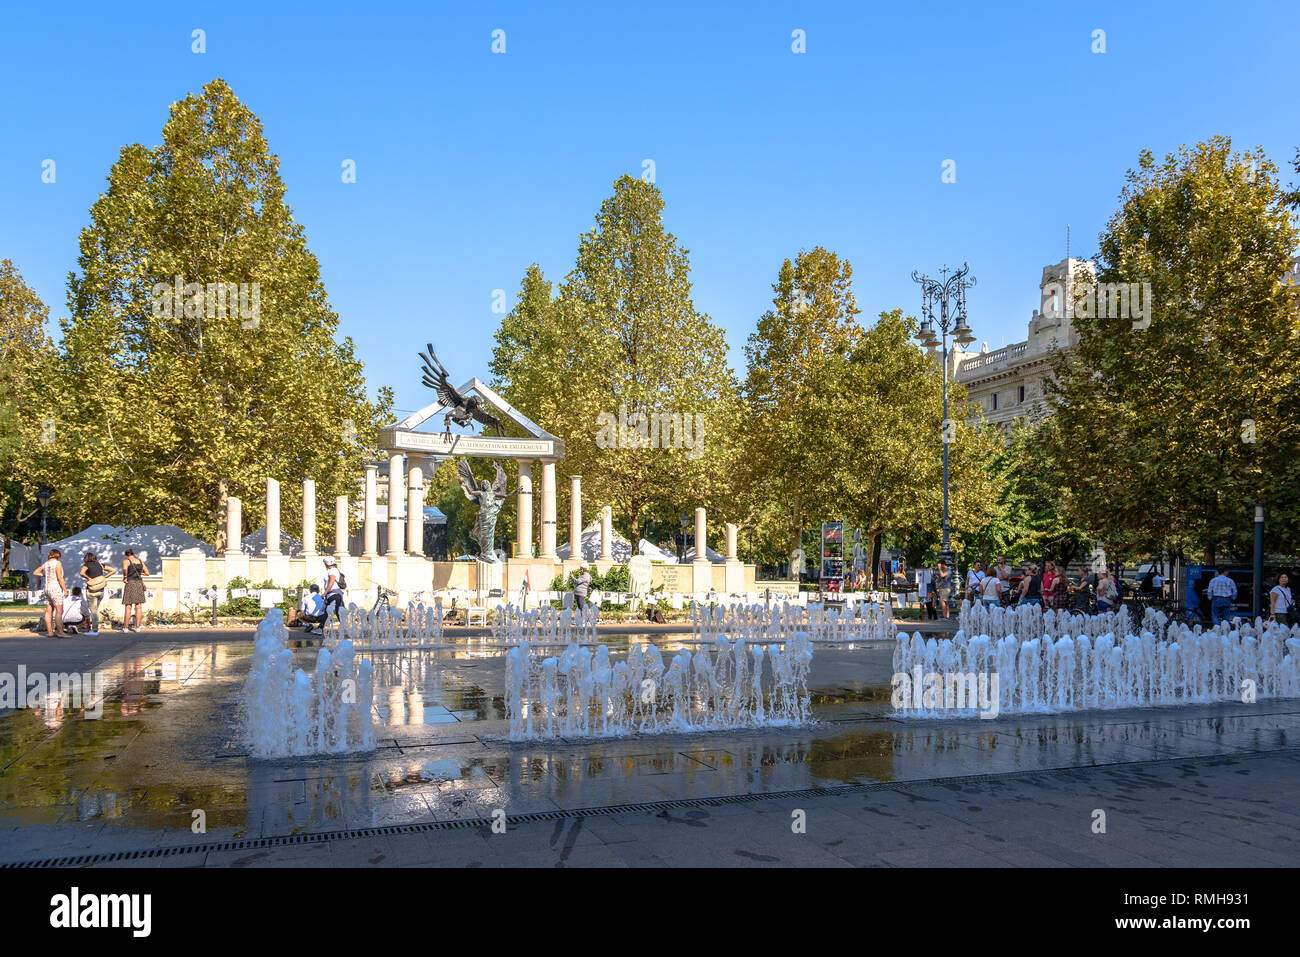 The controversial German occupation memorial in Budapest with a fountain - Stock Image